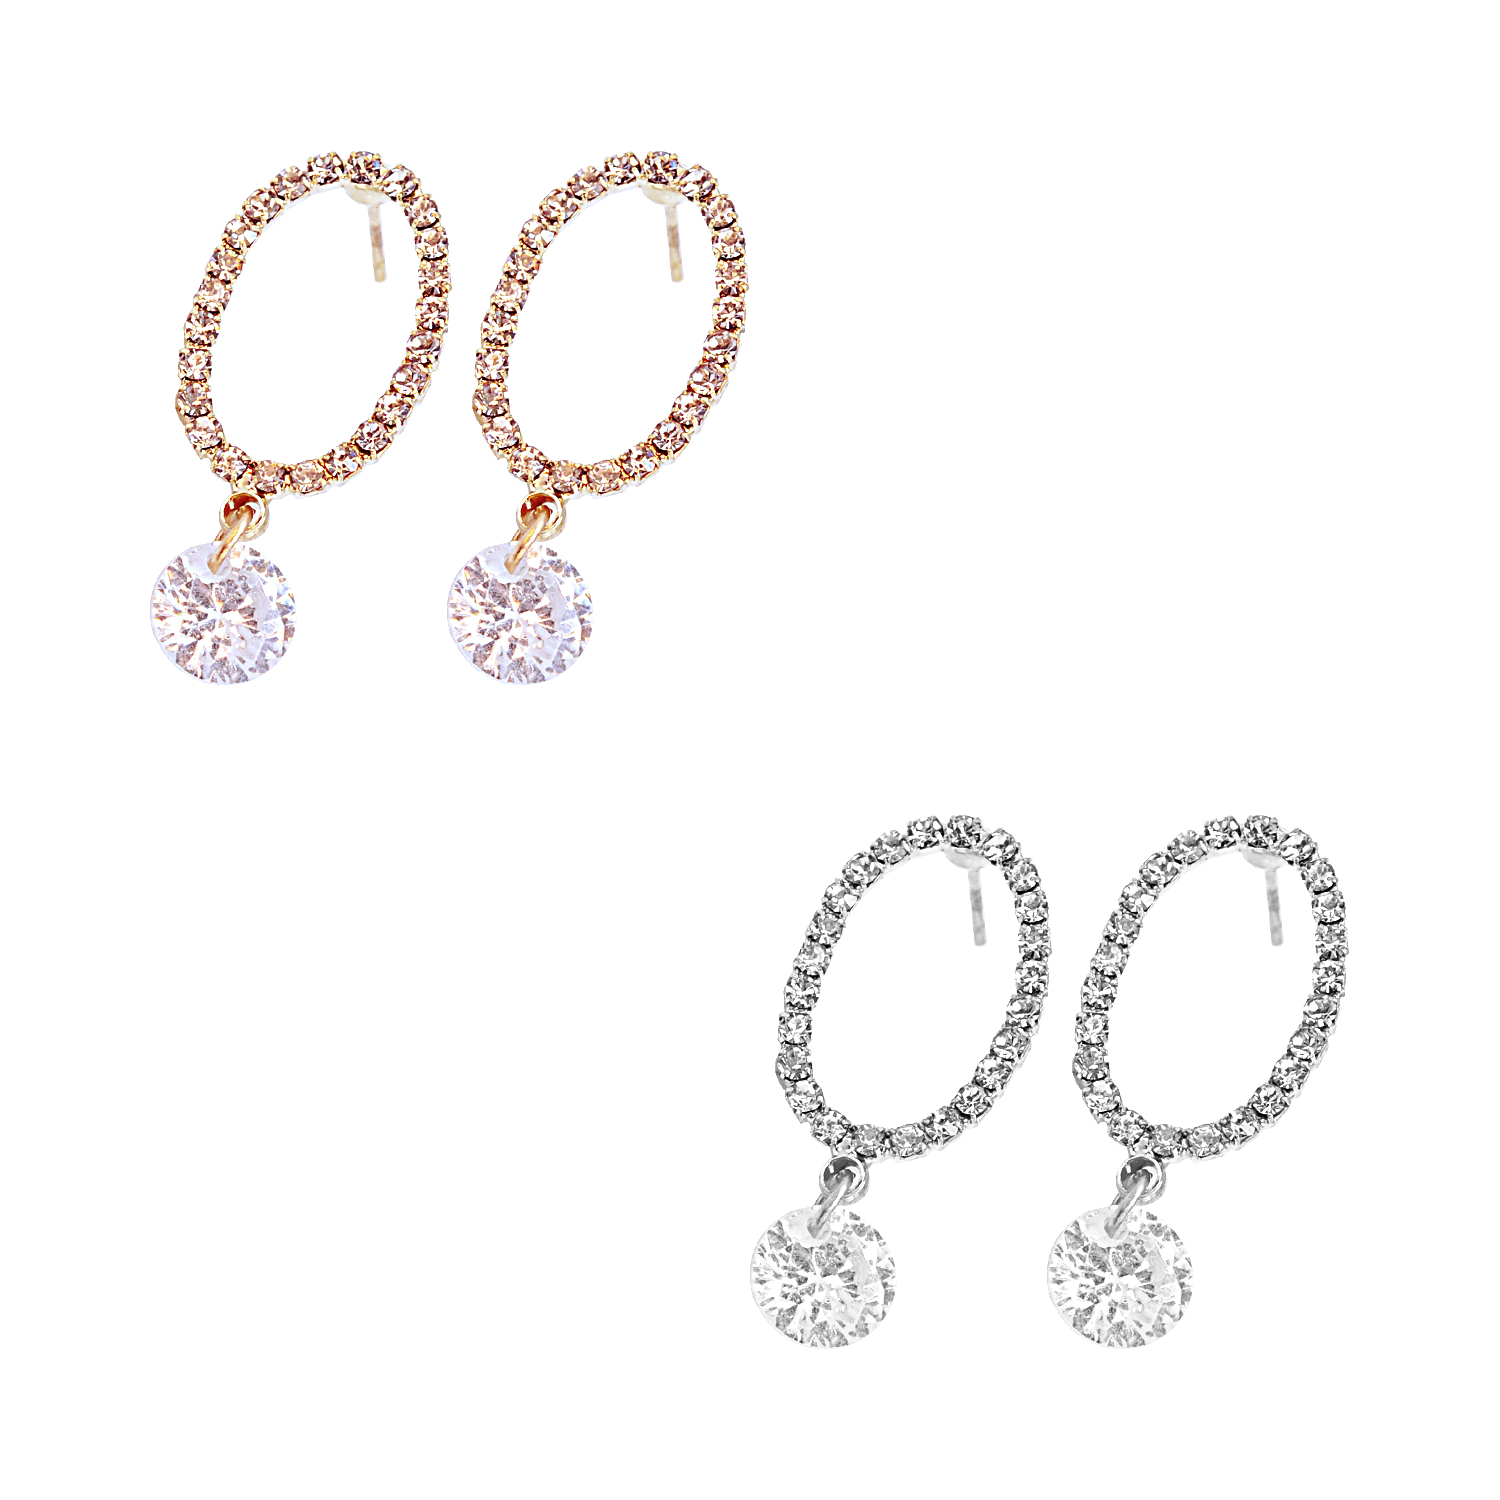 Rhinestone Encrusted Faux Diamond Earrings